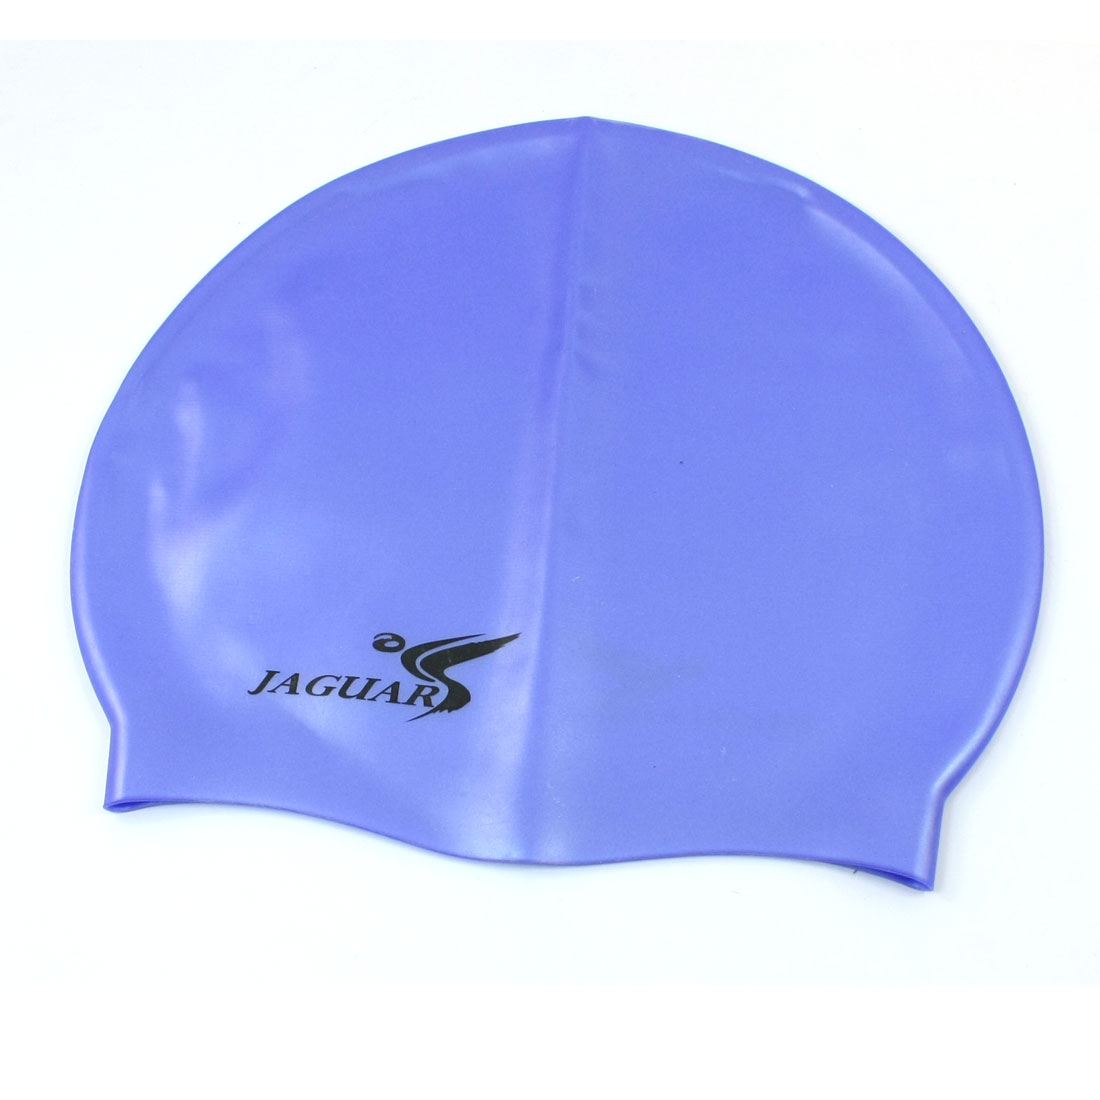 Waterproof Stretchy Swim Cap Indigo Blue for Swimming Diving Snorkeling